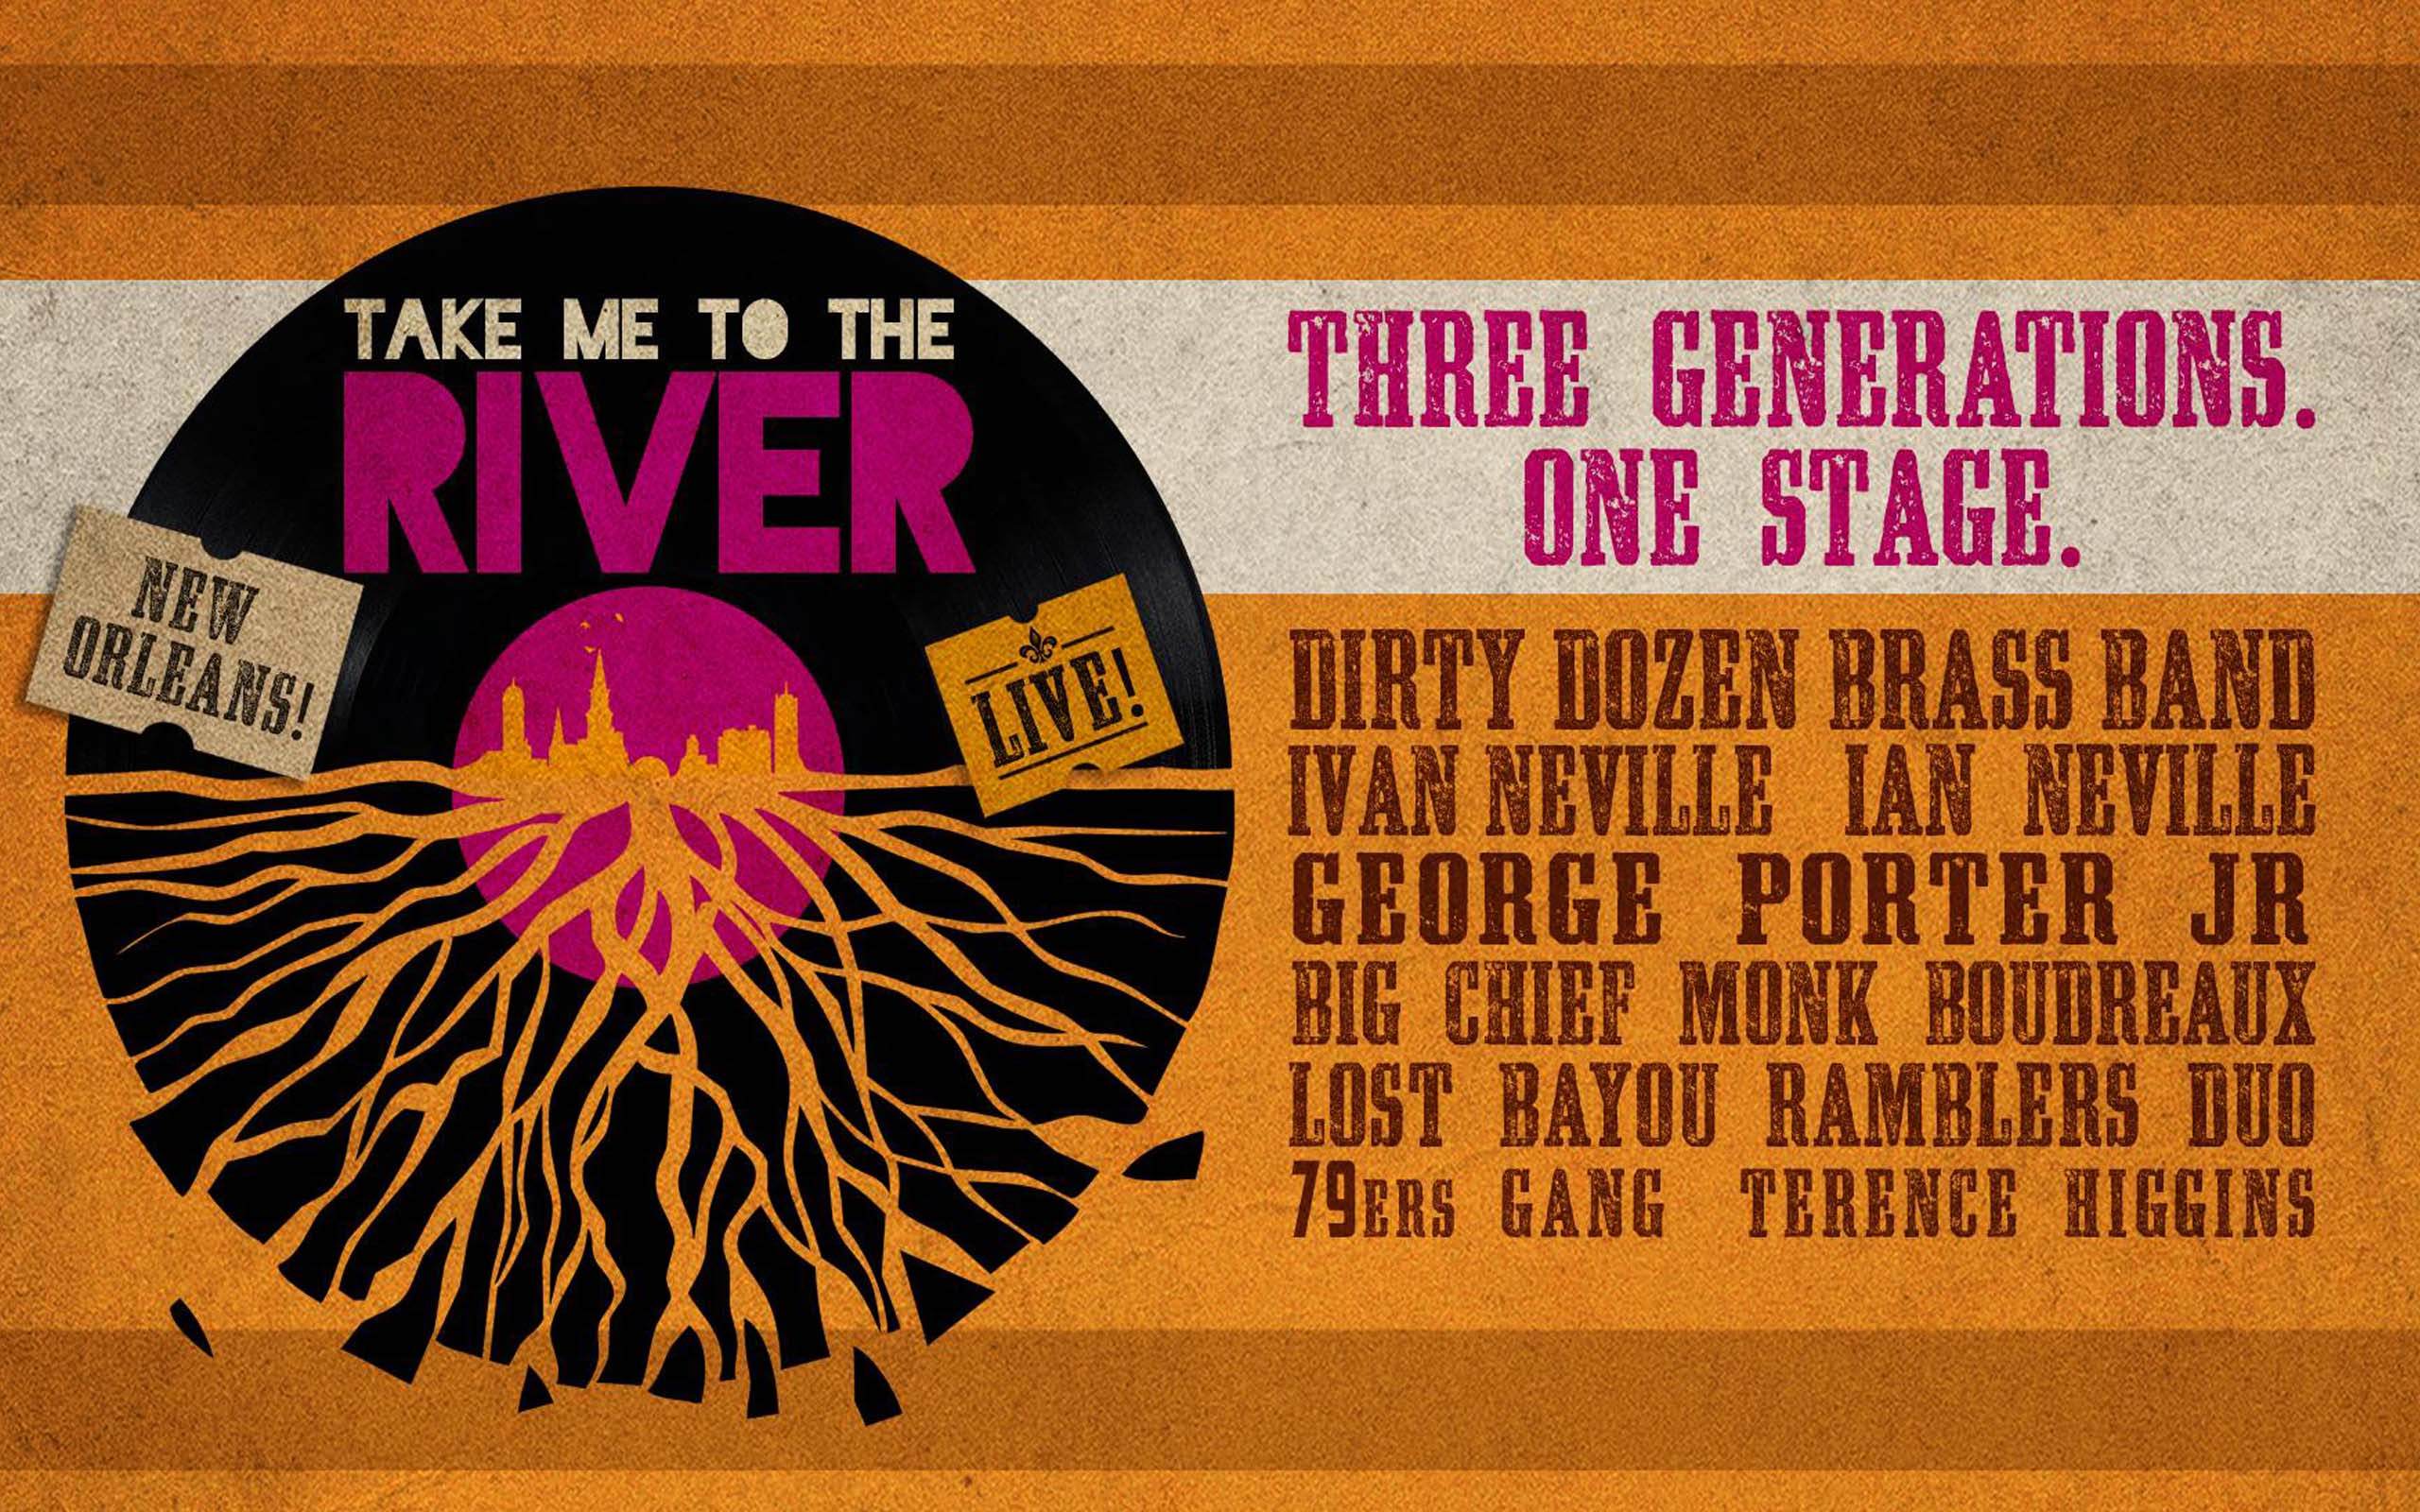 Take Me to the River New Orleans LIVE